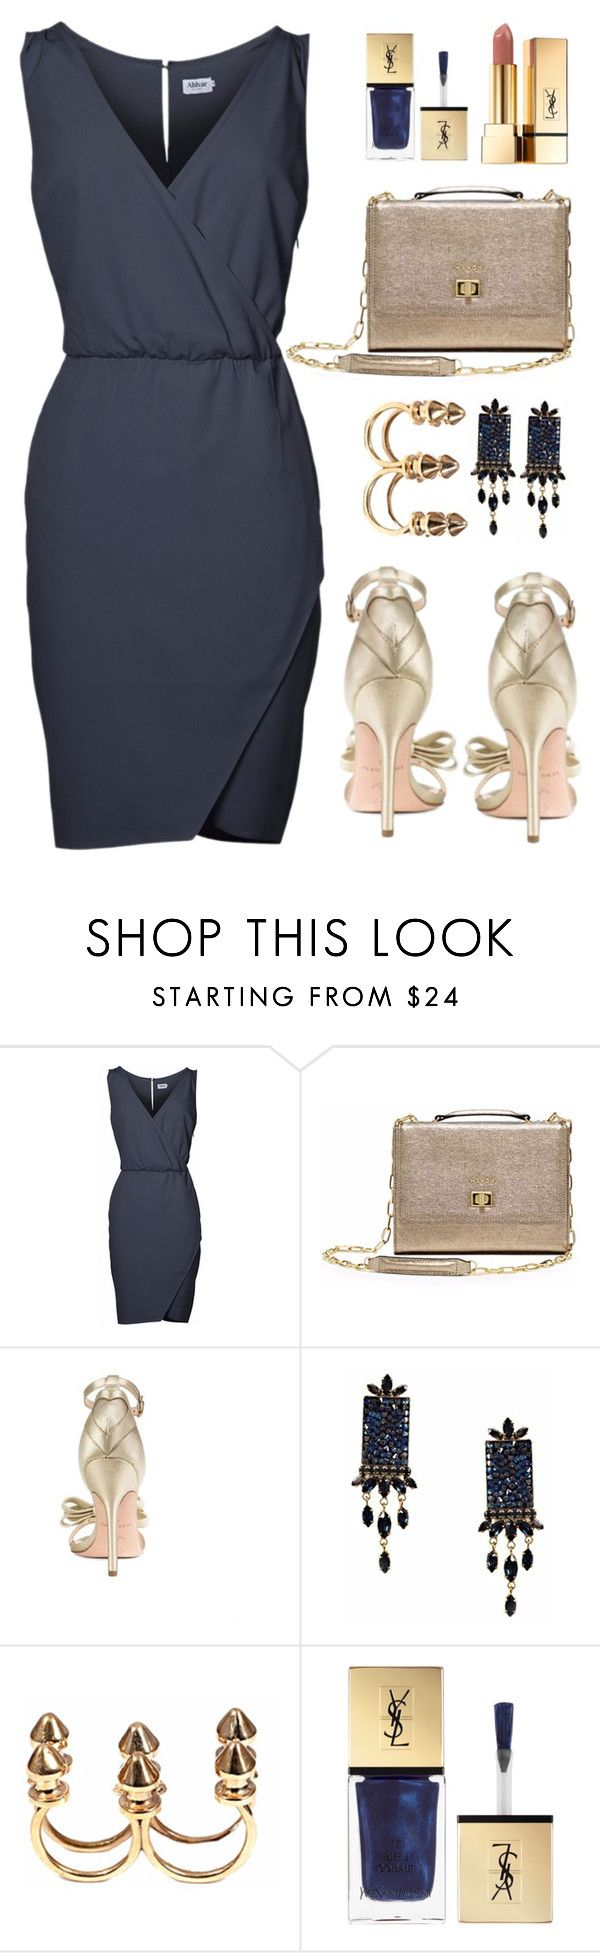 """Date night outfit inspiration!"" by runway2street ❤ liked on Polyvore featuring Isa Tapia, Otazu, Bernard Delettrez and Yves Saint Laurent"